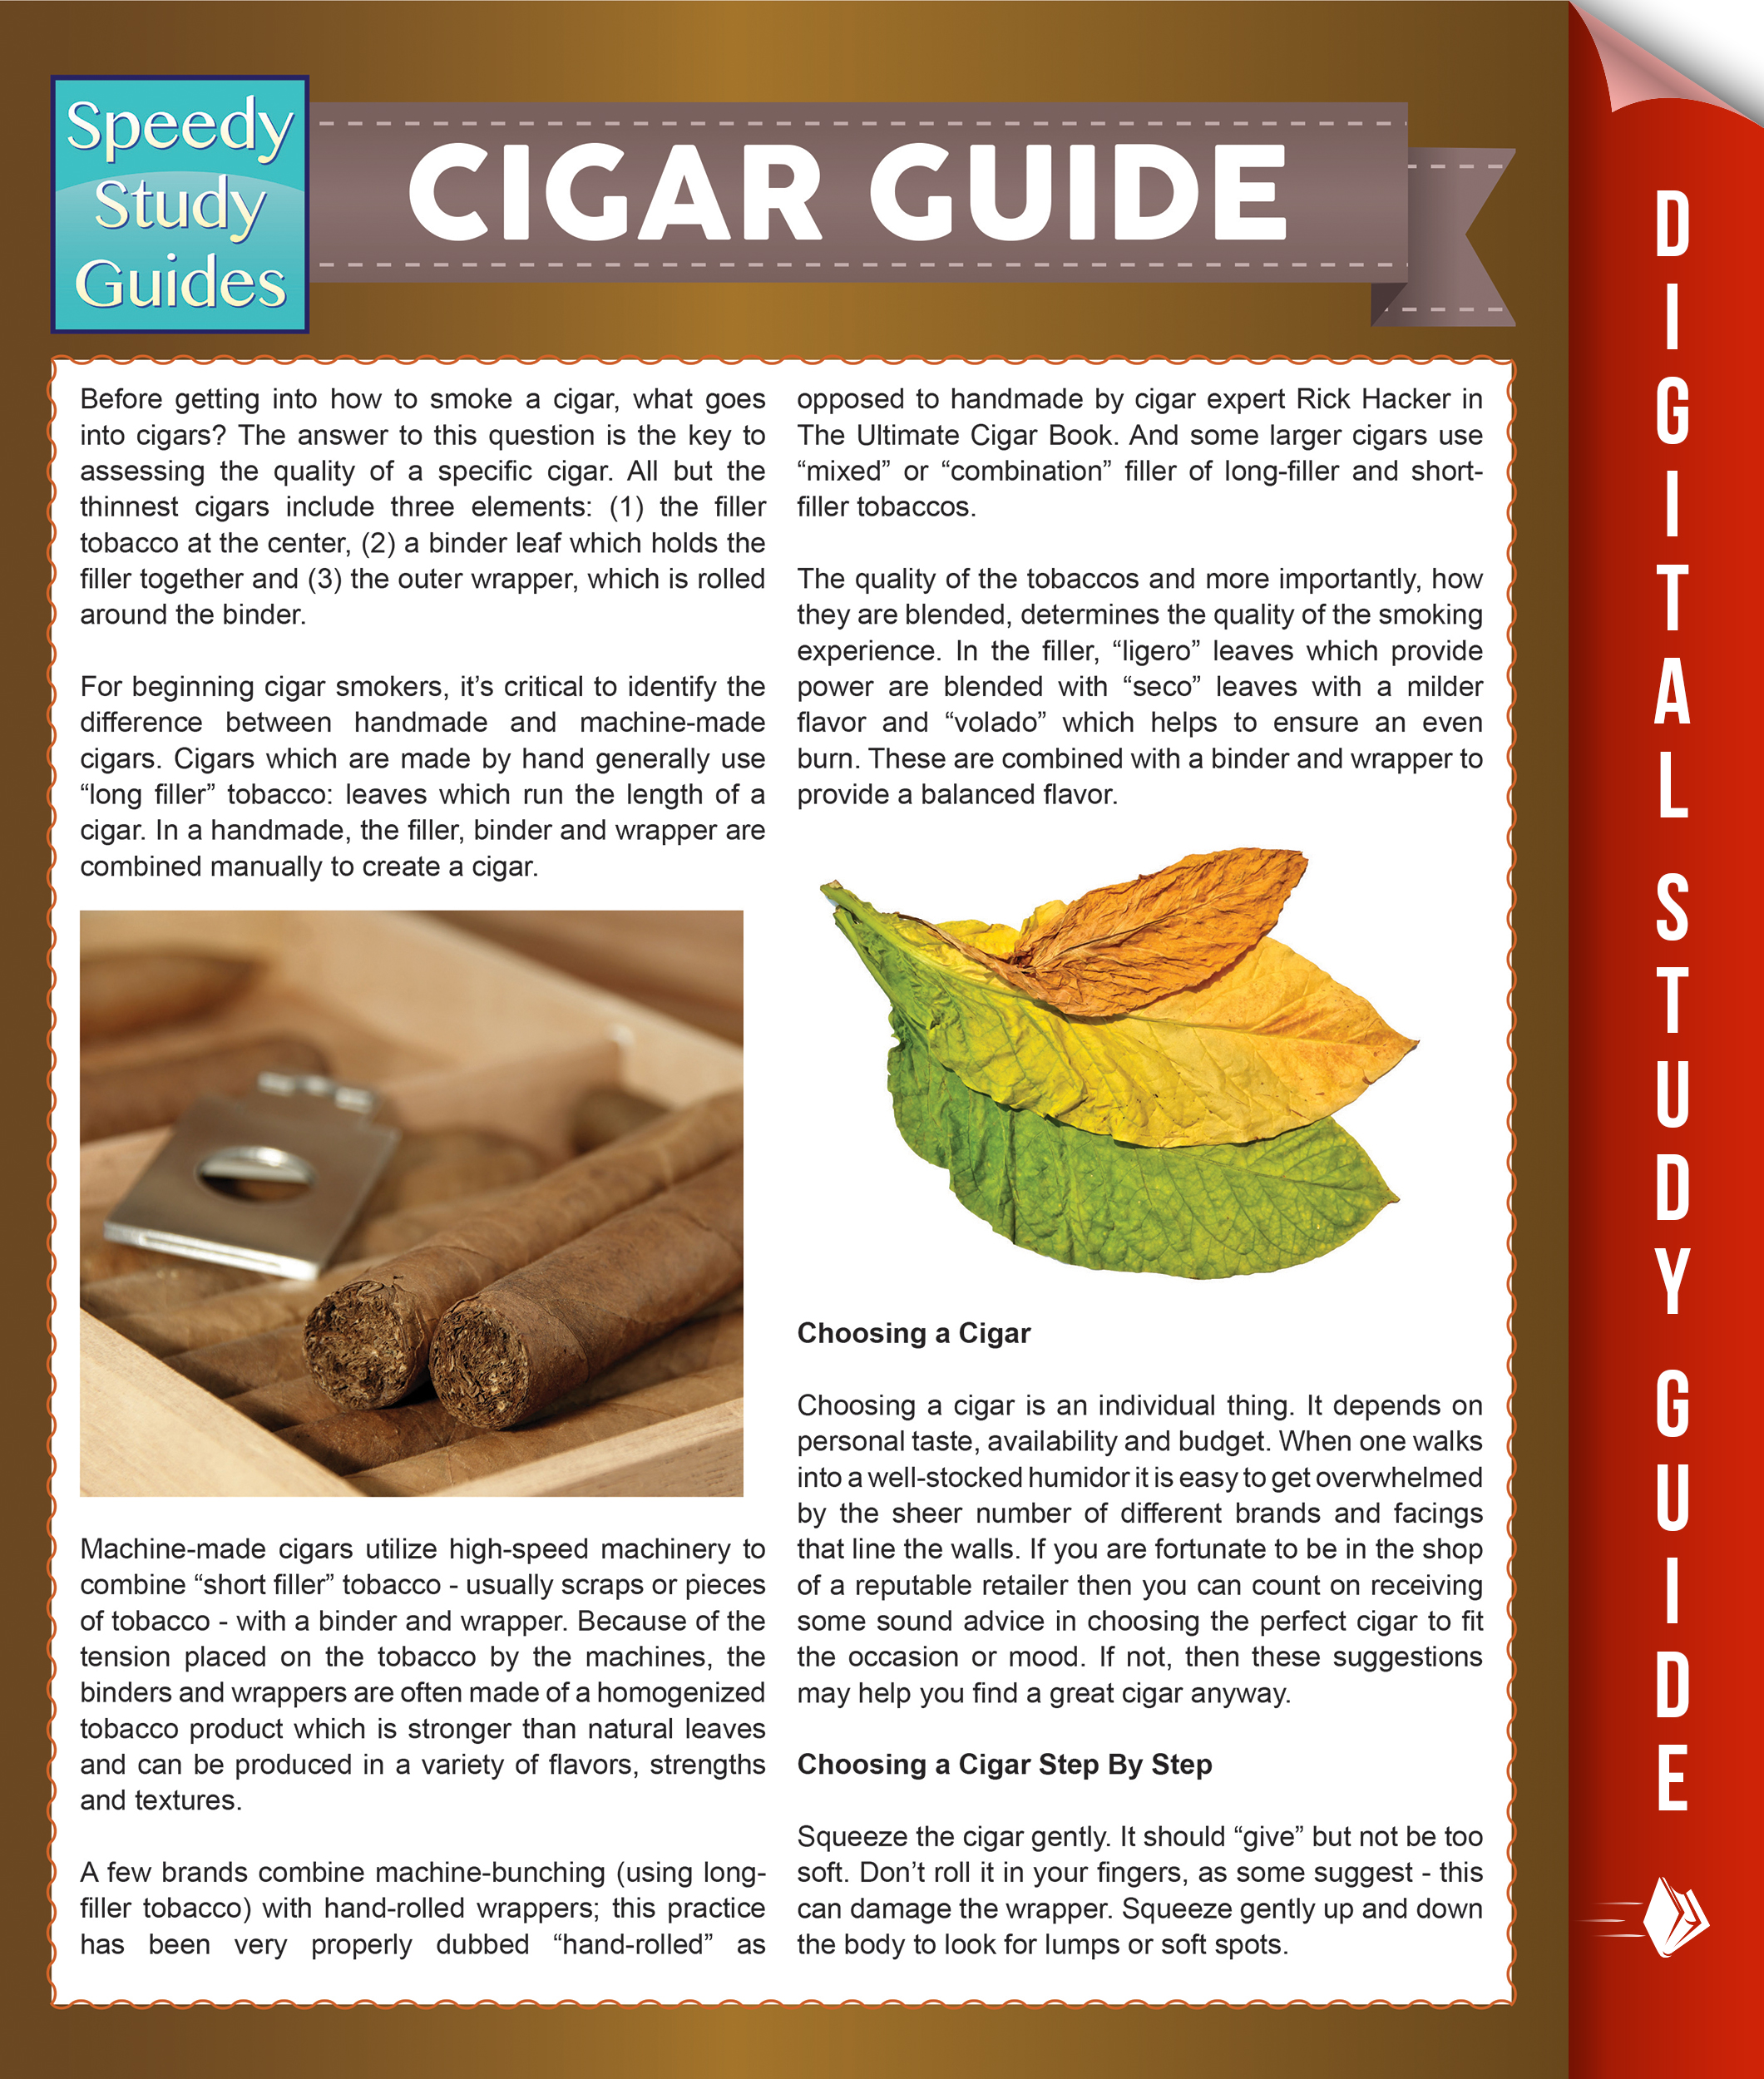 Cigar Guide (Speedy Study Guides)